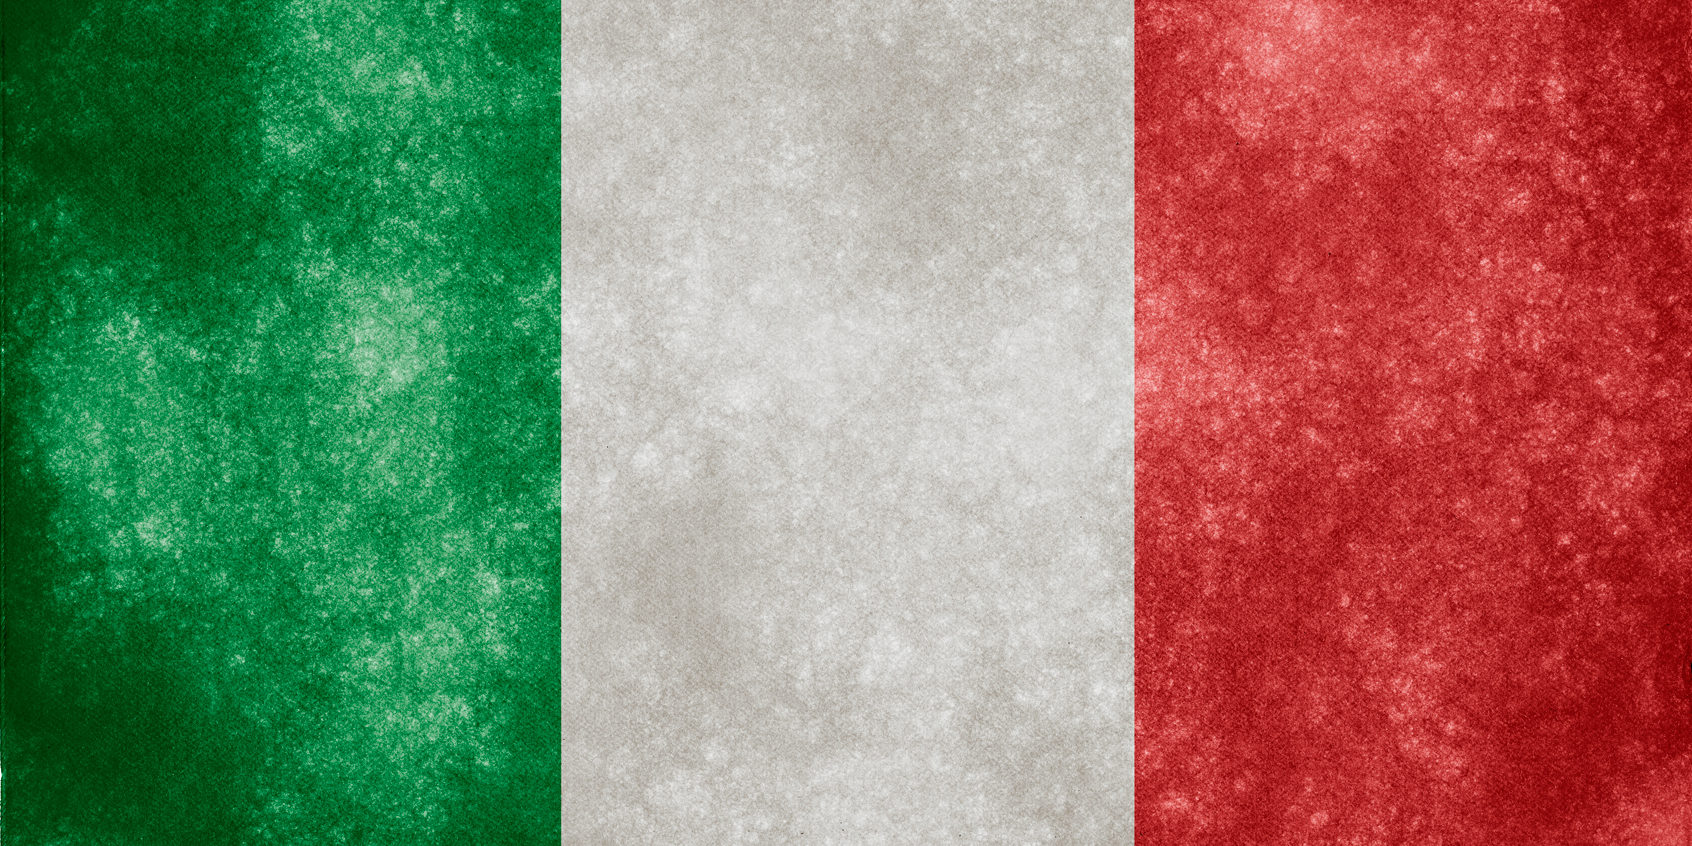 An illustration of a Italy flag.